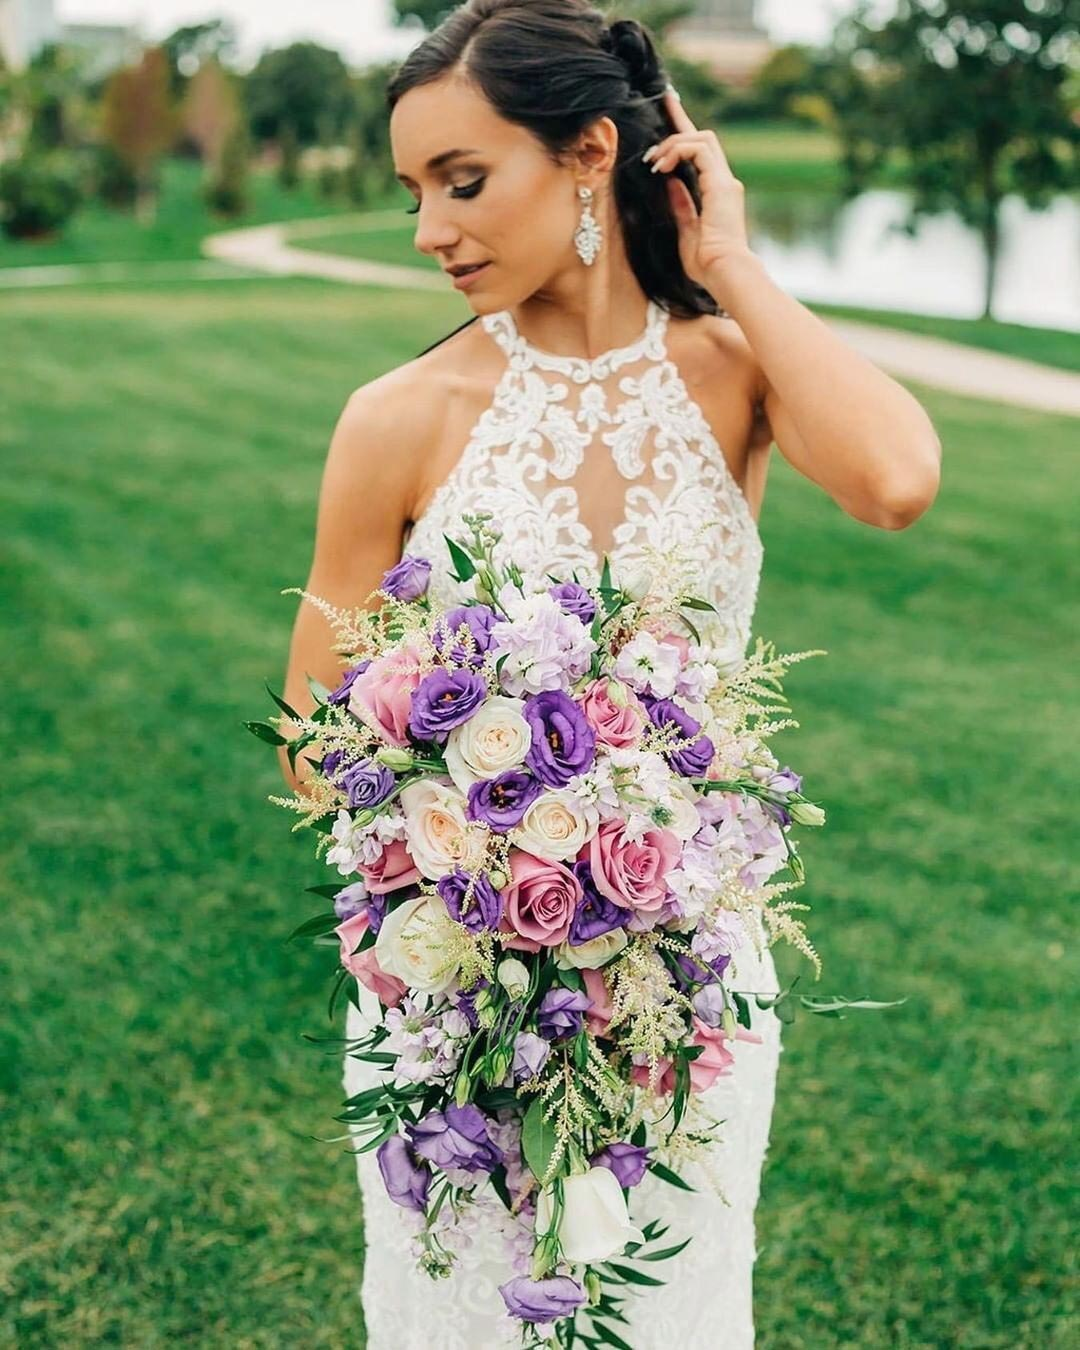 lilac wedding colors bride bouquet